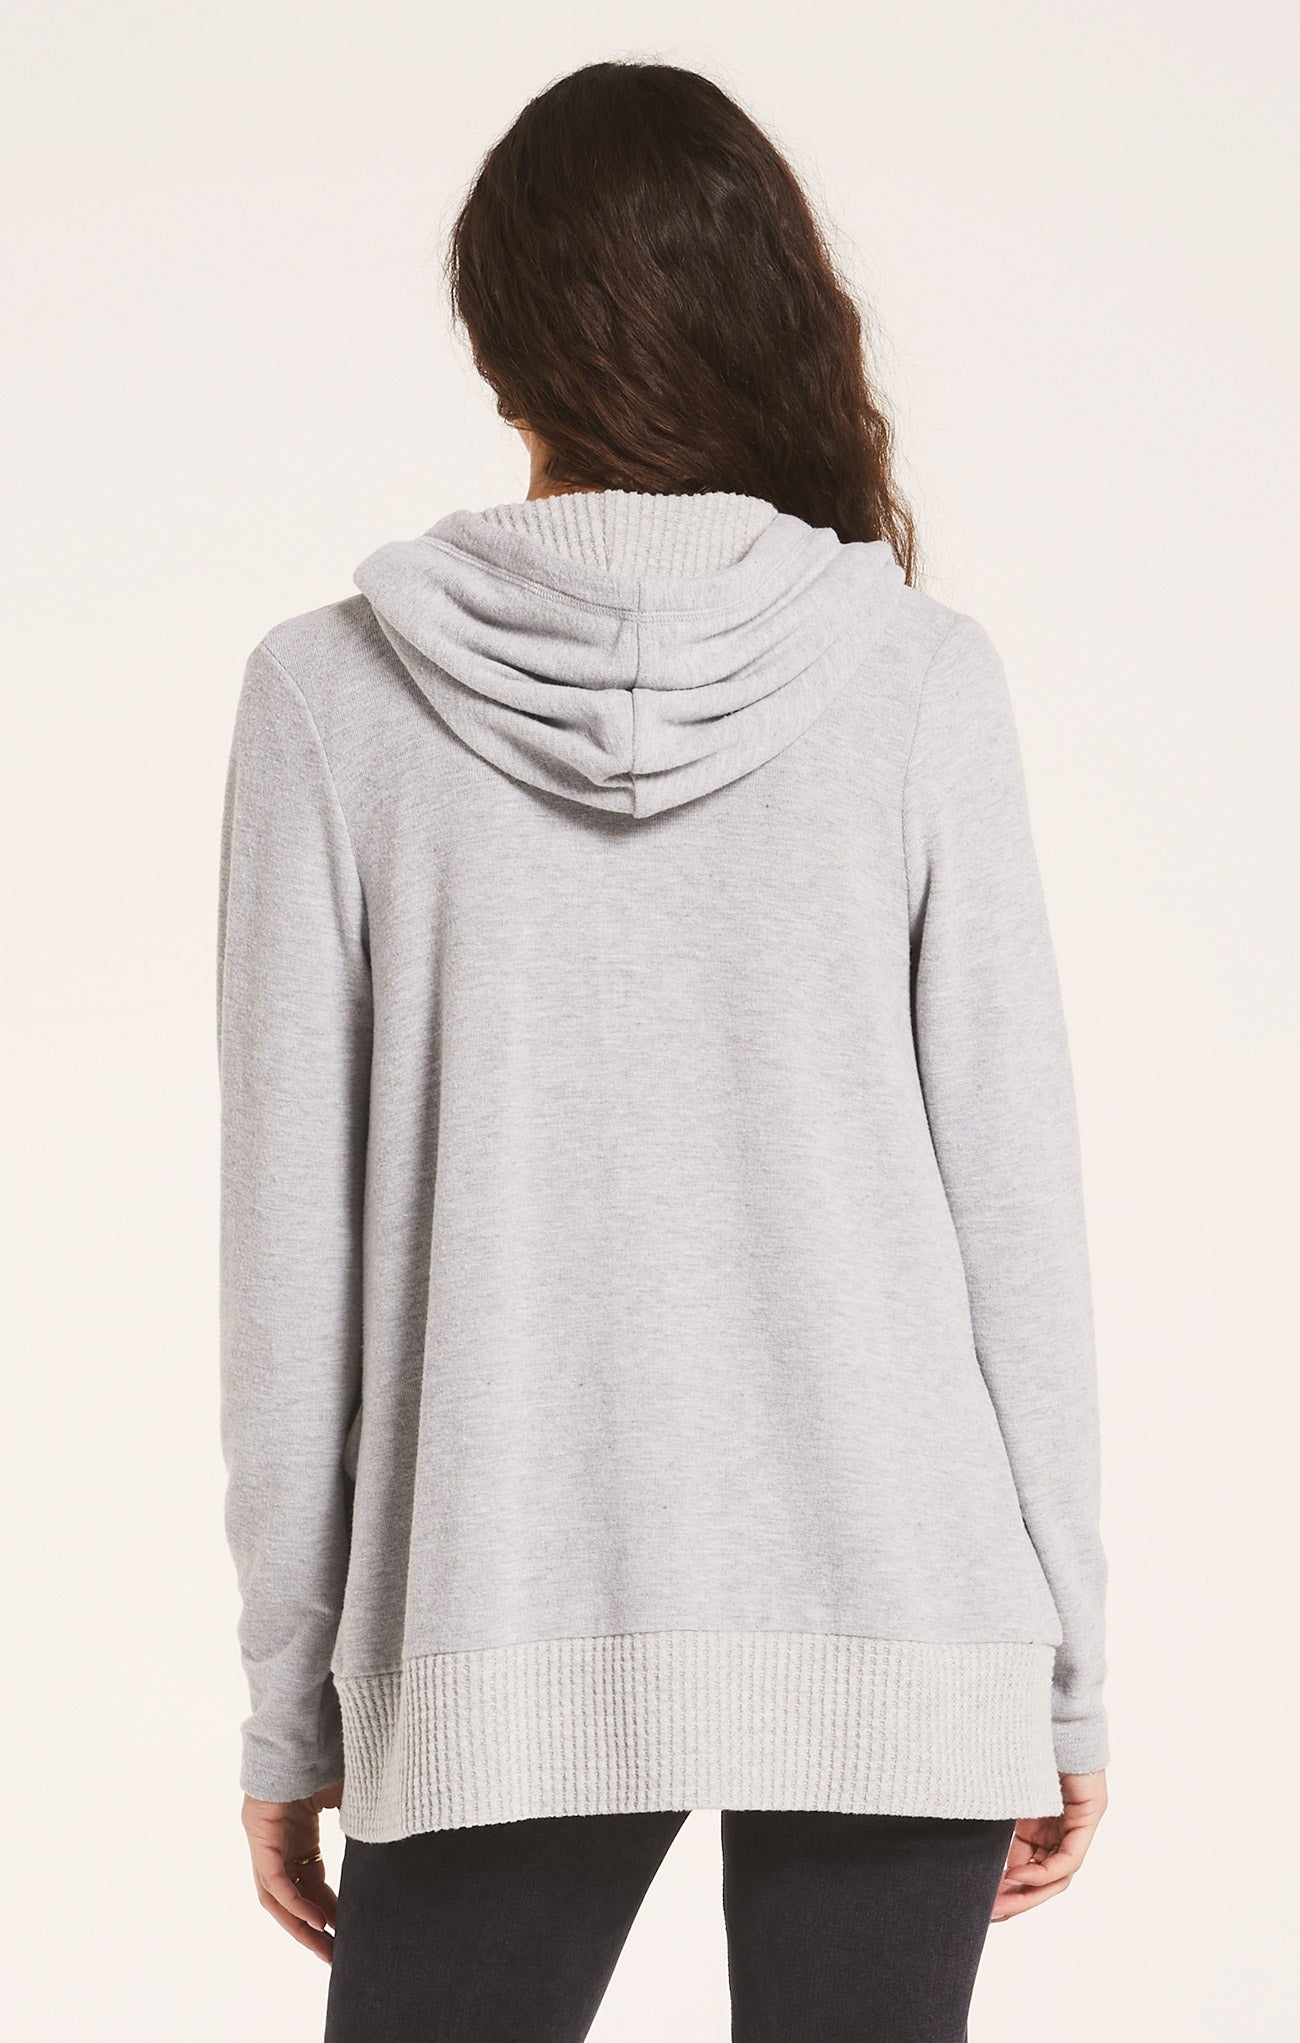 Sweaters Thermal Lined Soft Spun Cardigan Heather Grey